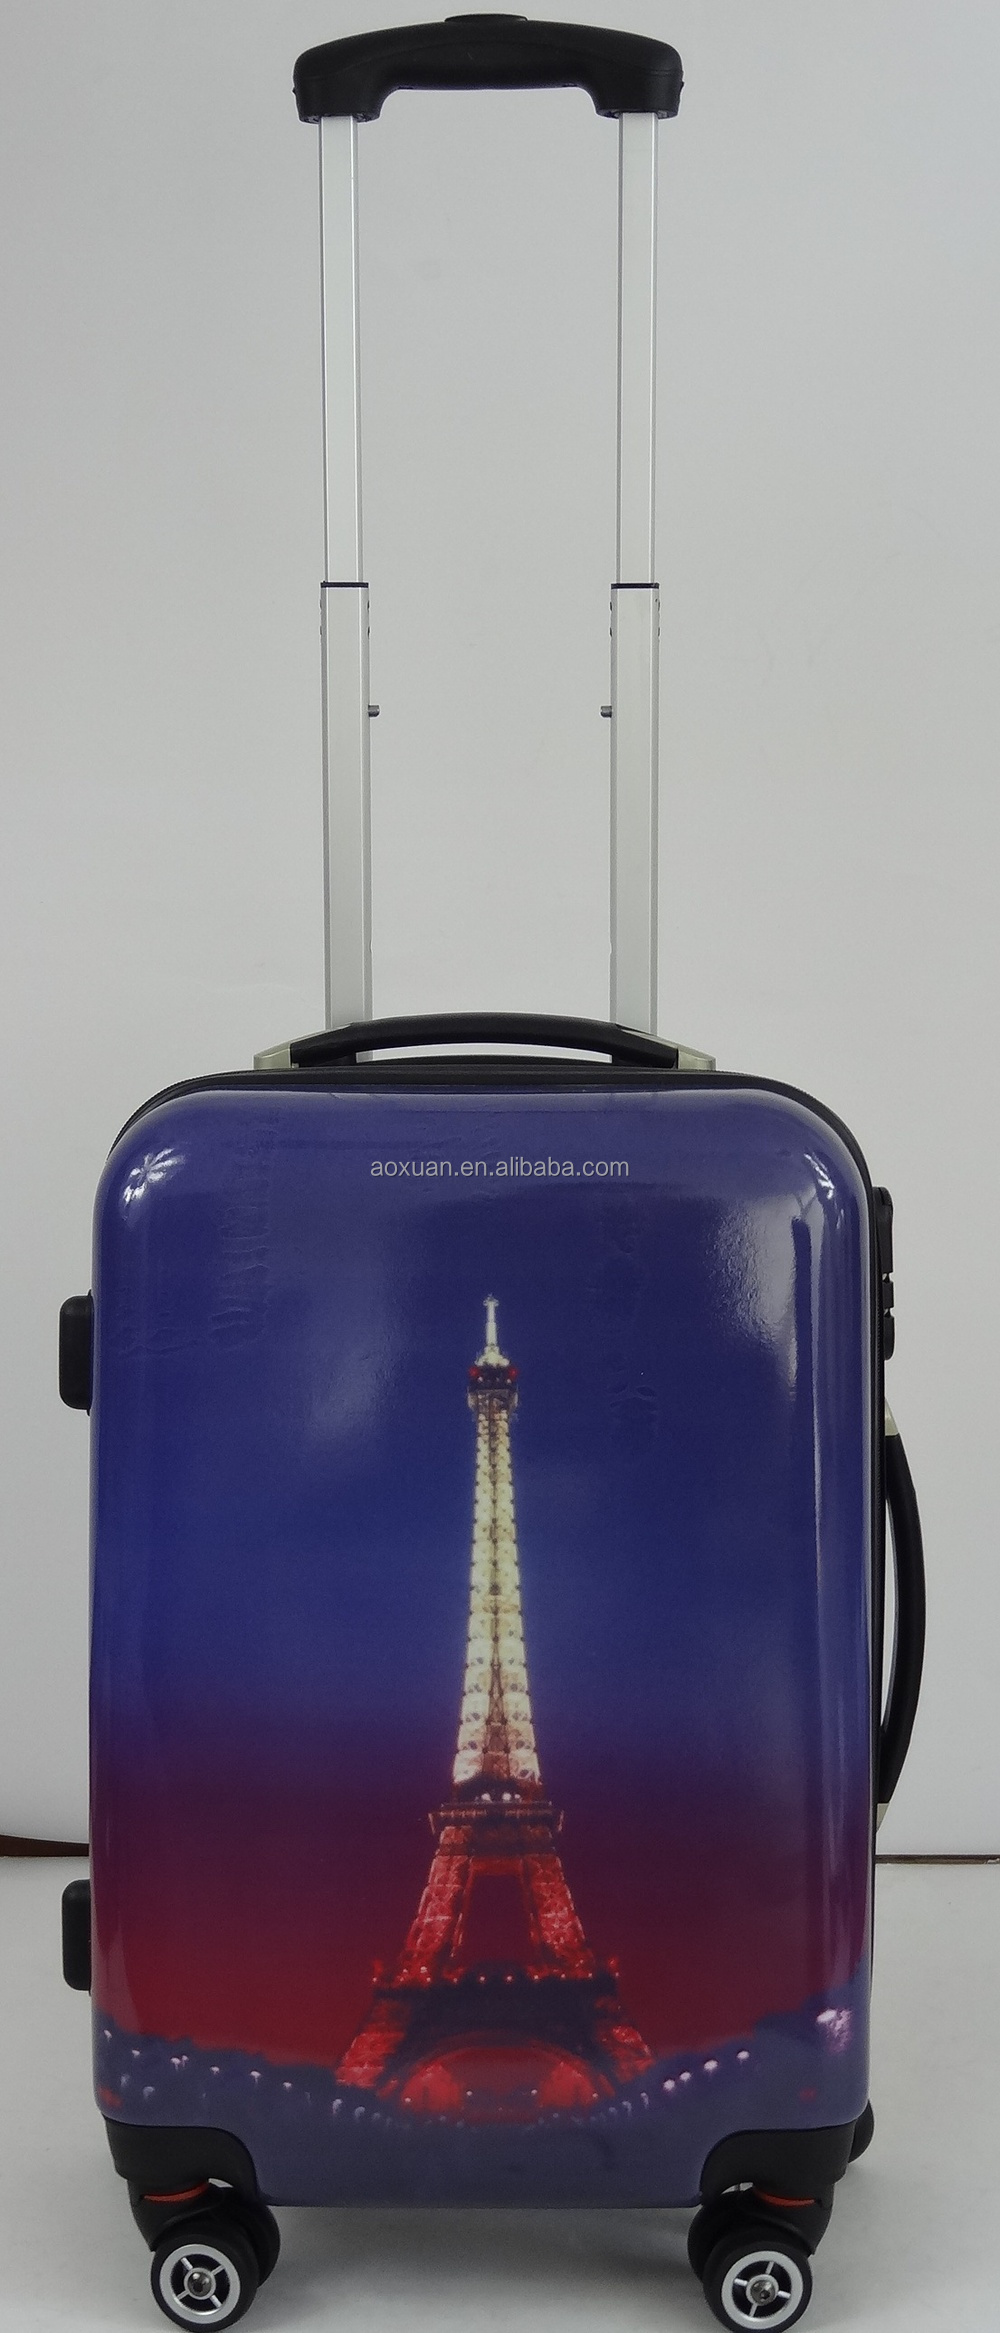 Paris Eiffel Tower ABS printed hard luggage set bag spinner luggage bag